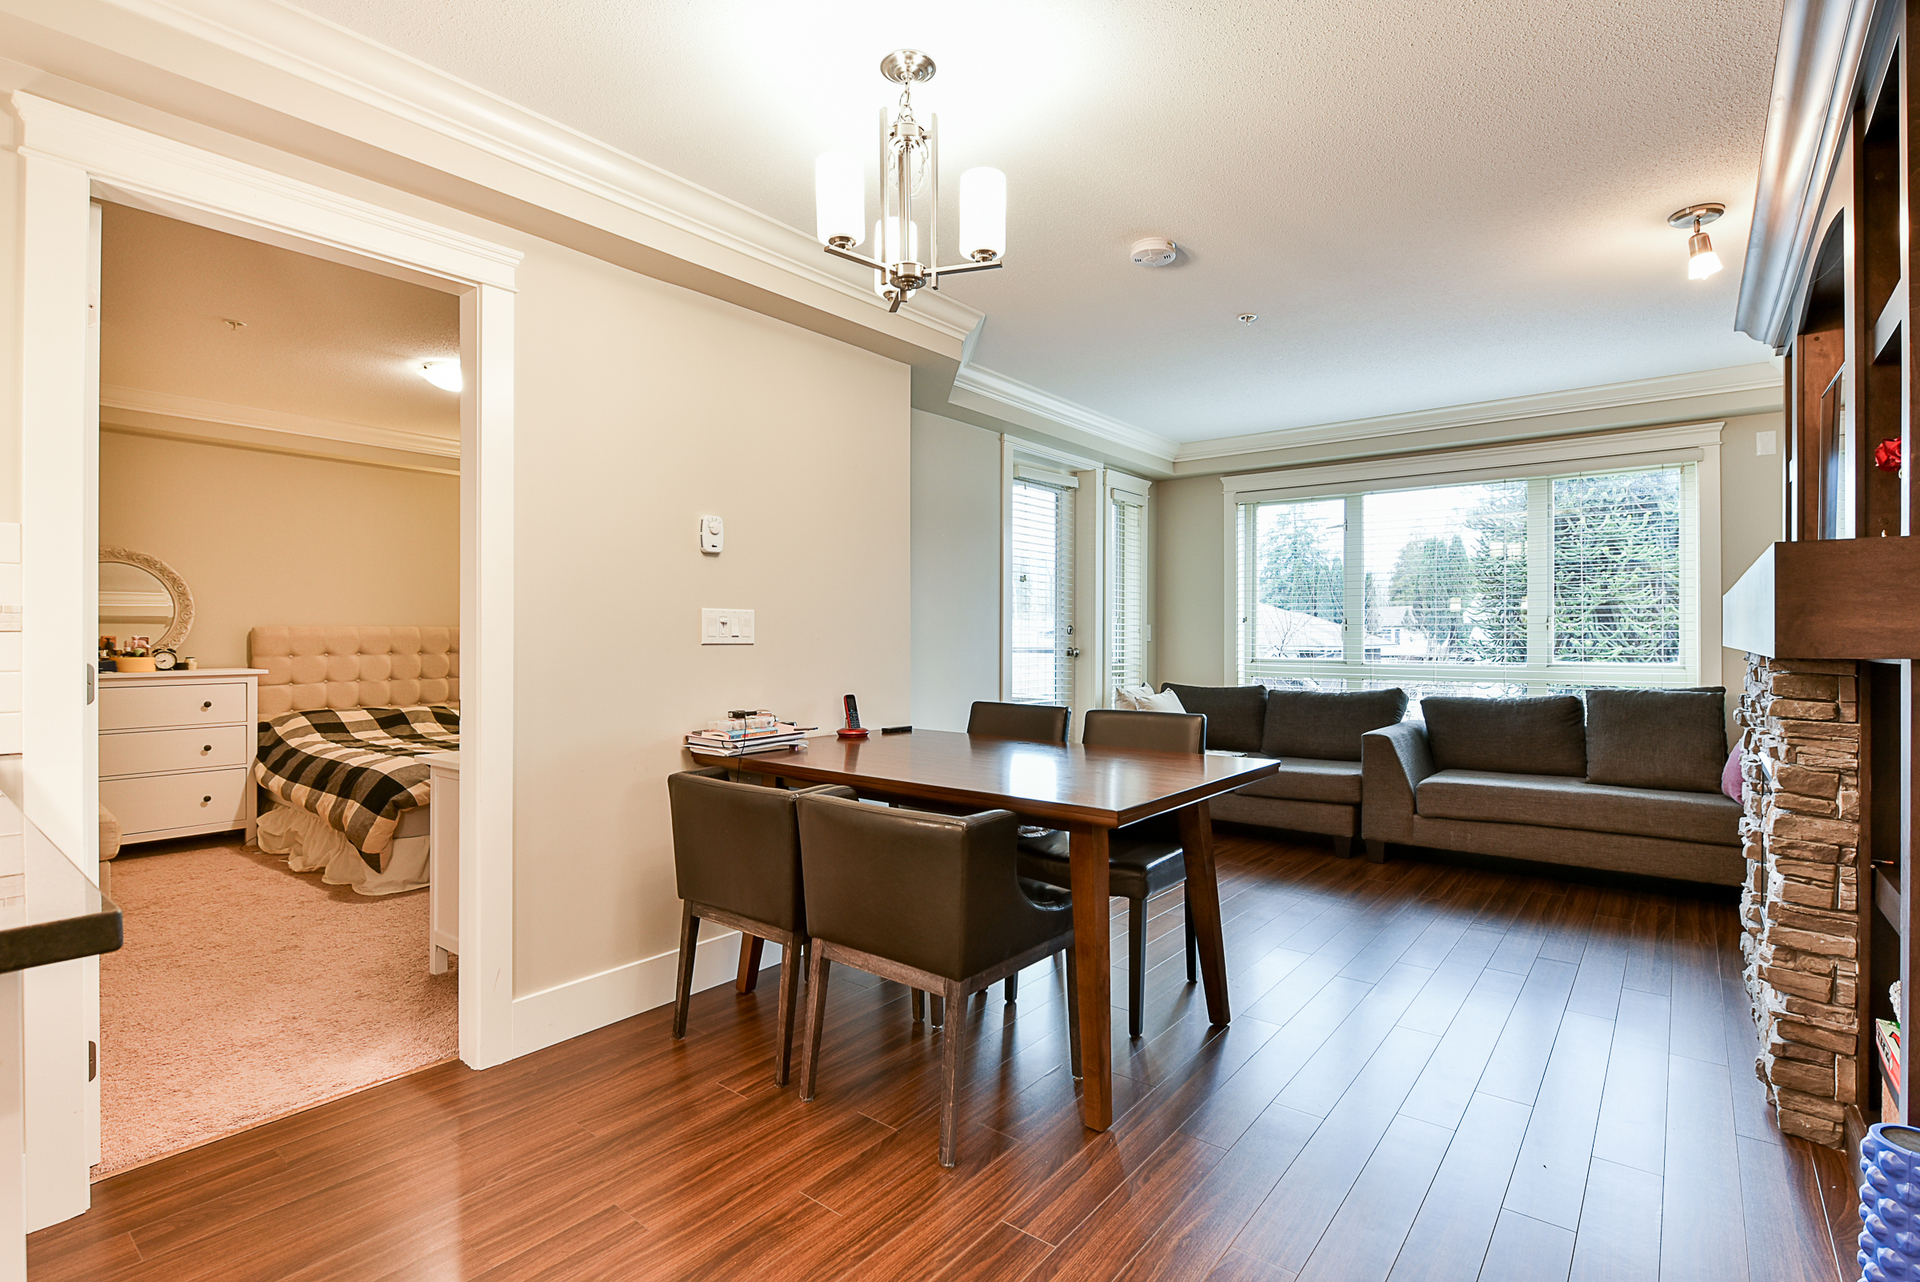 unit-209-2175-fraser-avenue-port-coquitlam-13 at #209 - 2175 Fraser Avenue, Glenwood PQ, Port Coquitlam